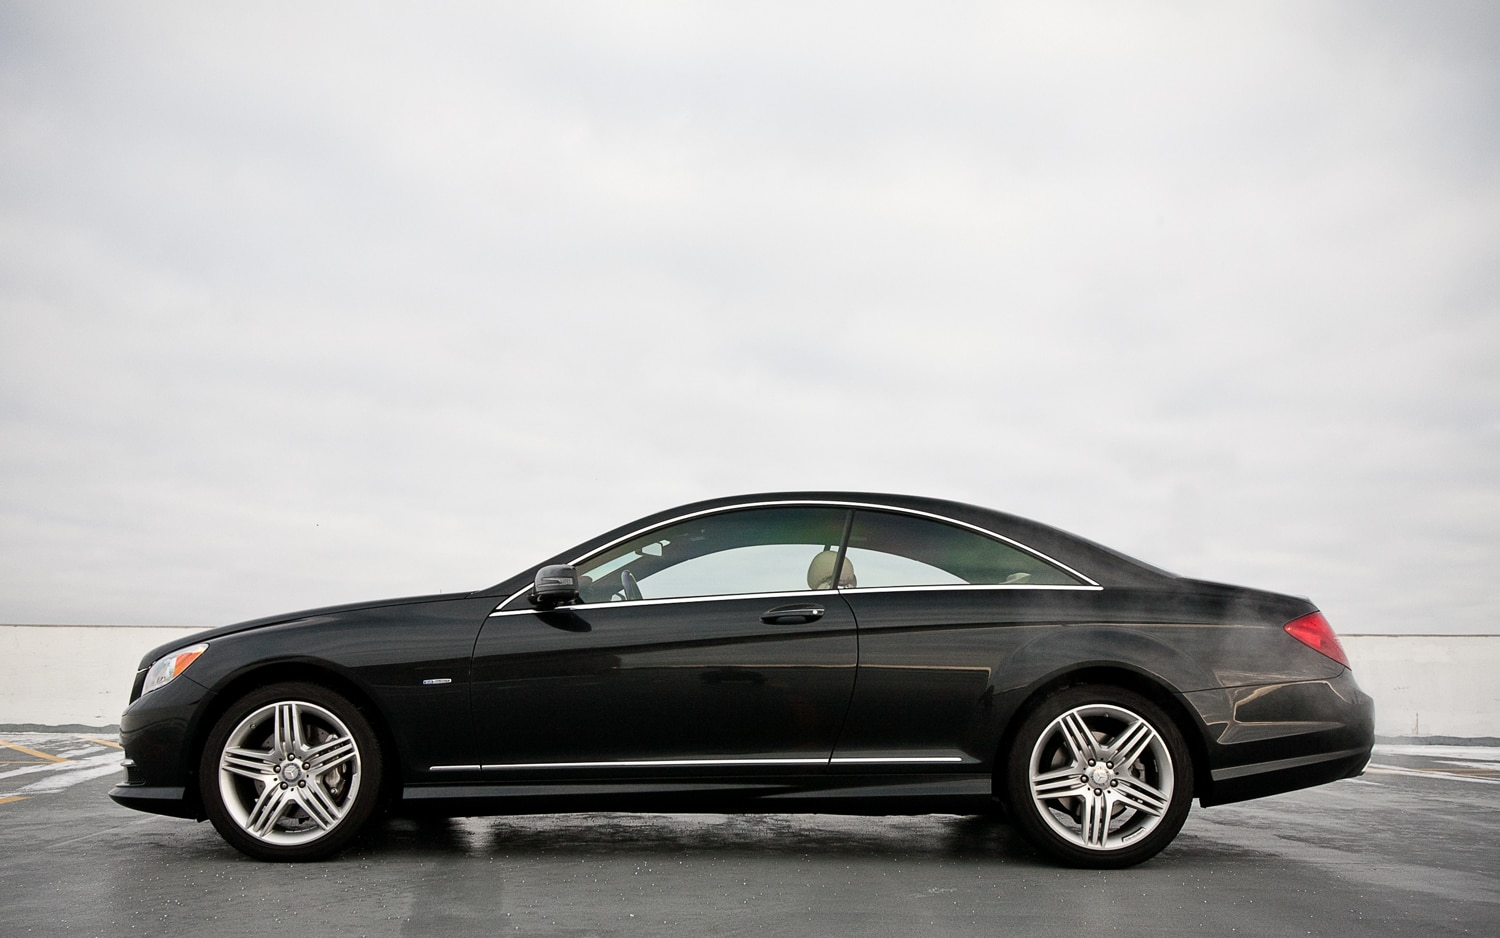 Mercedes Benz Of Ann Arbor >> 2012 Mercedes-Benz CL550 4Matic - Editors' Notebook - Automobile Magazine